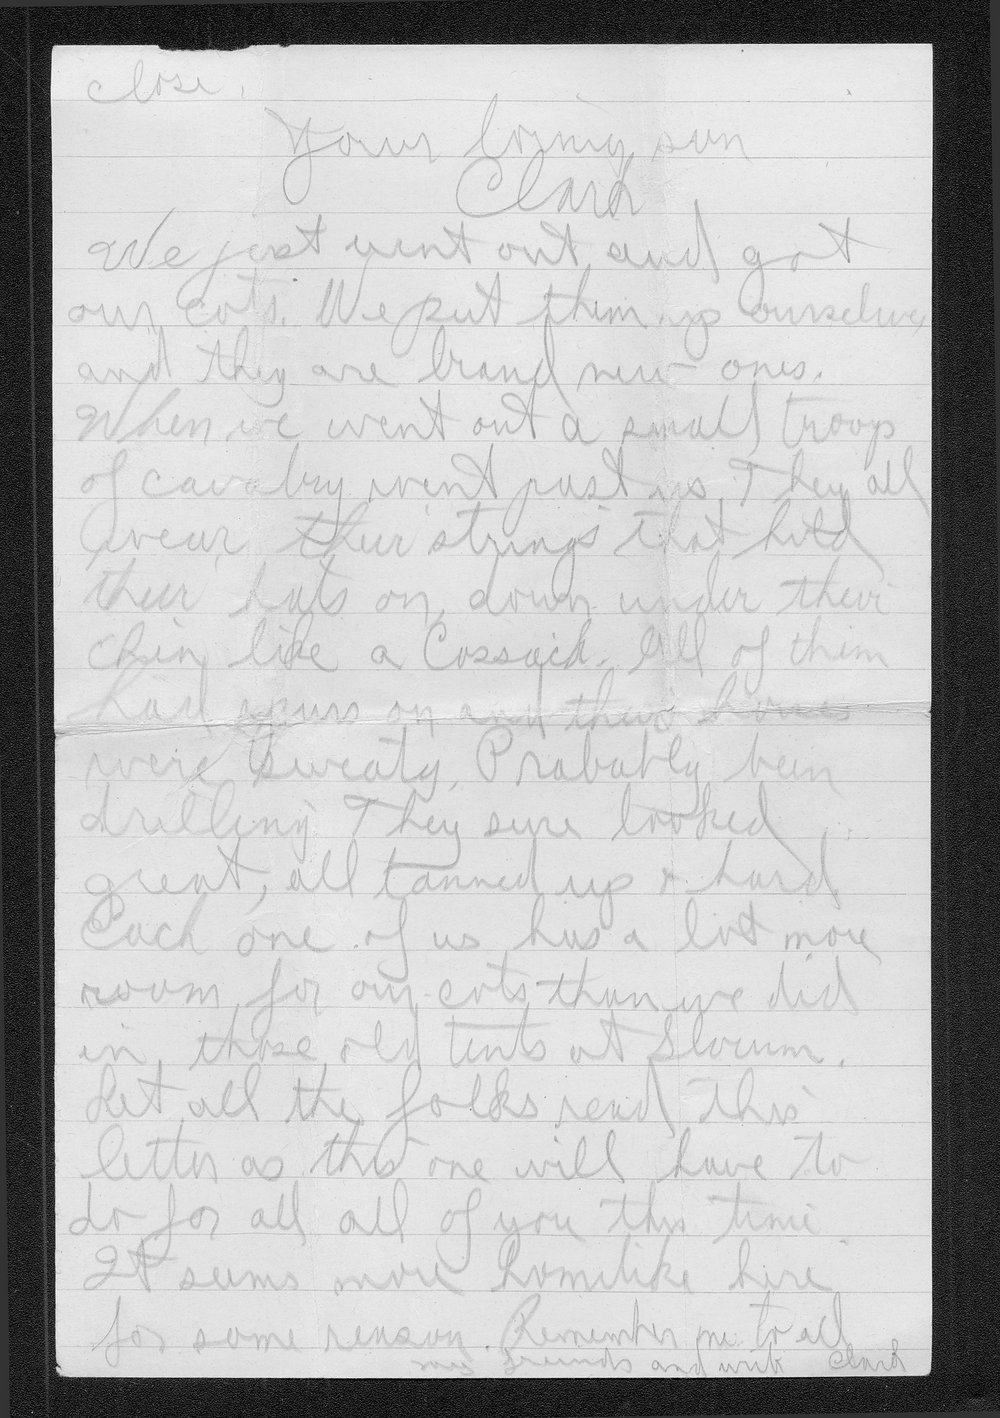 Clark Bruster to his family - 6